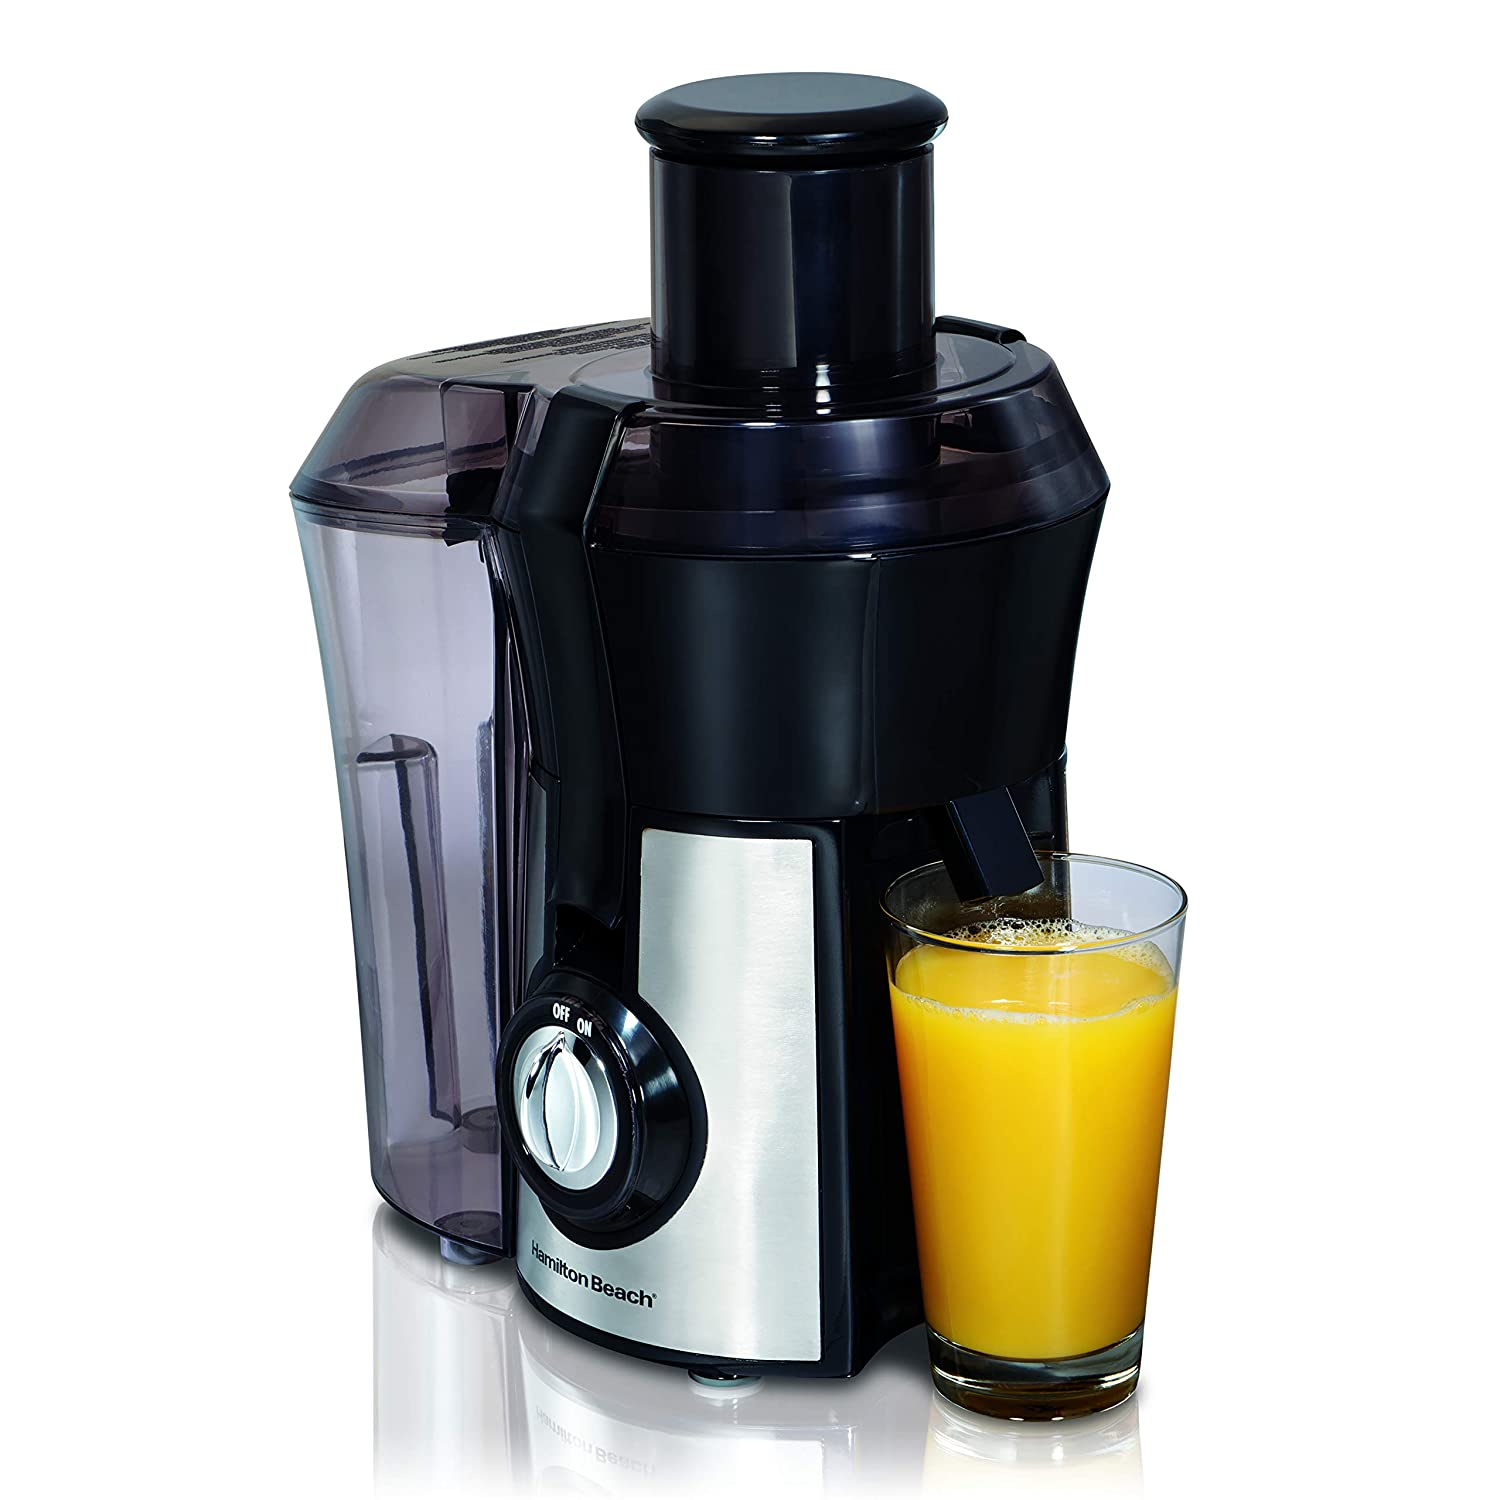 Hamilton Beach 040094922635 67608A Juicer, Electric, 800 Watt, Easy to Clean, BPA Free, Large Silver